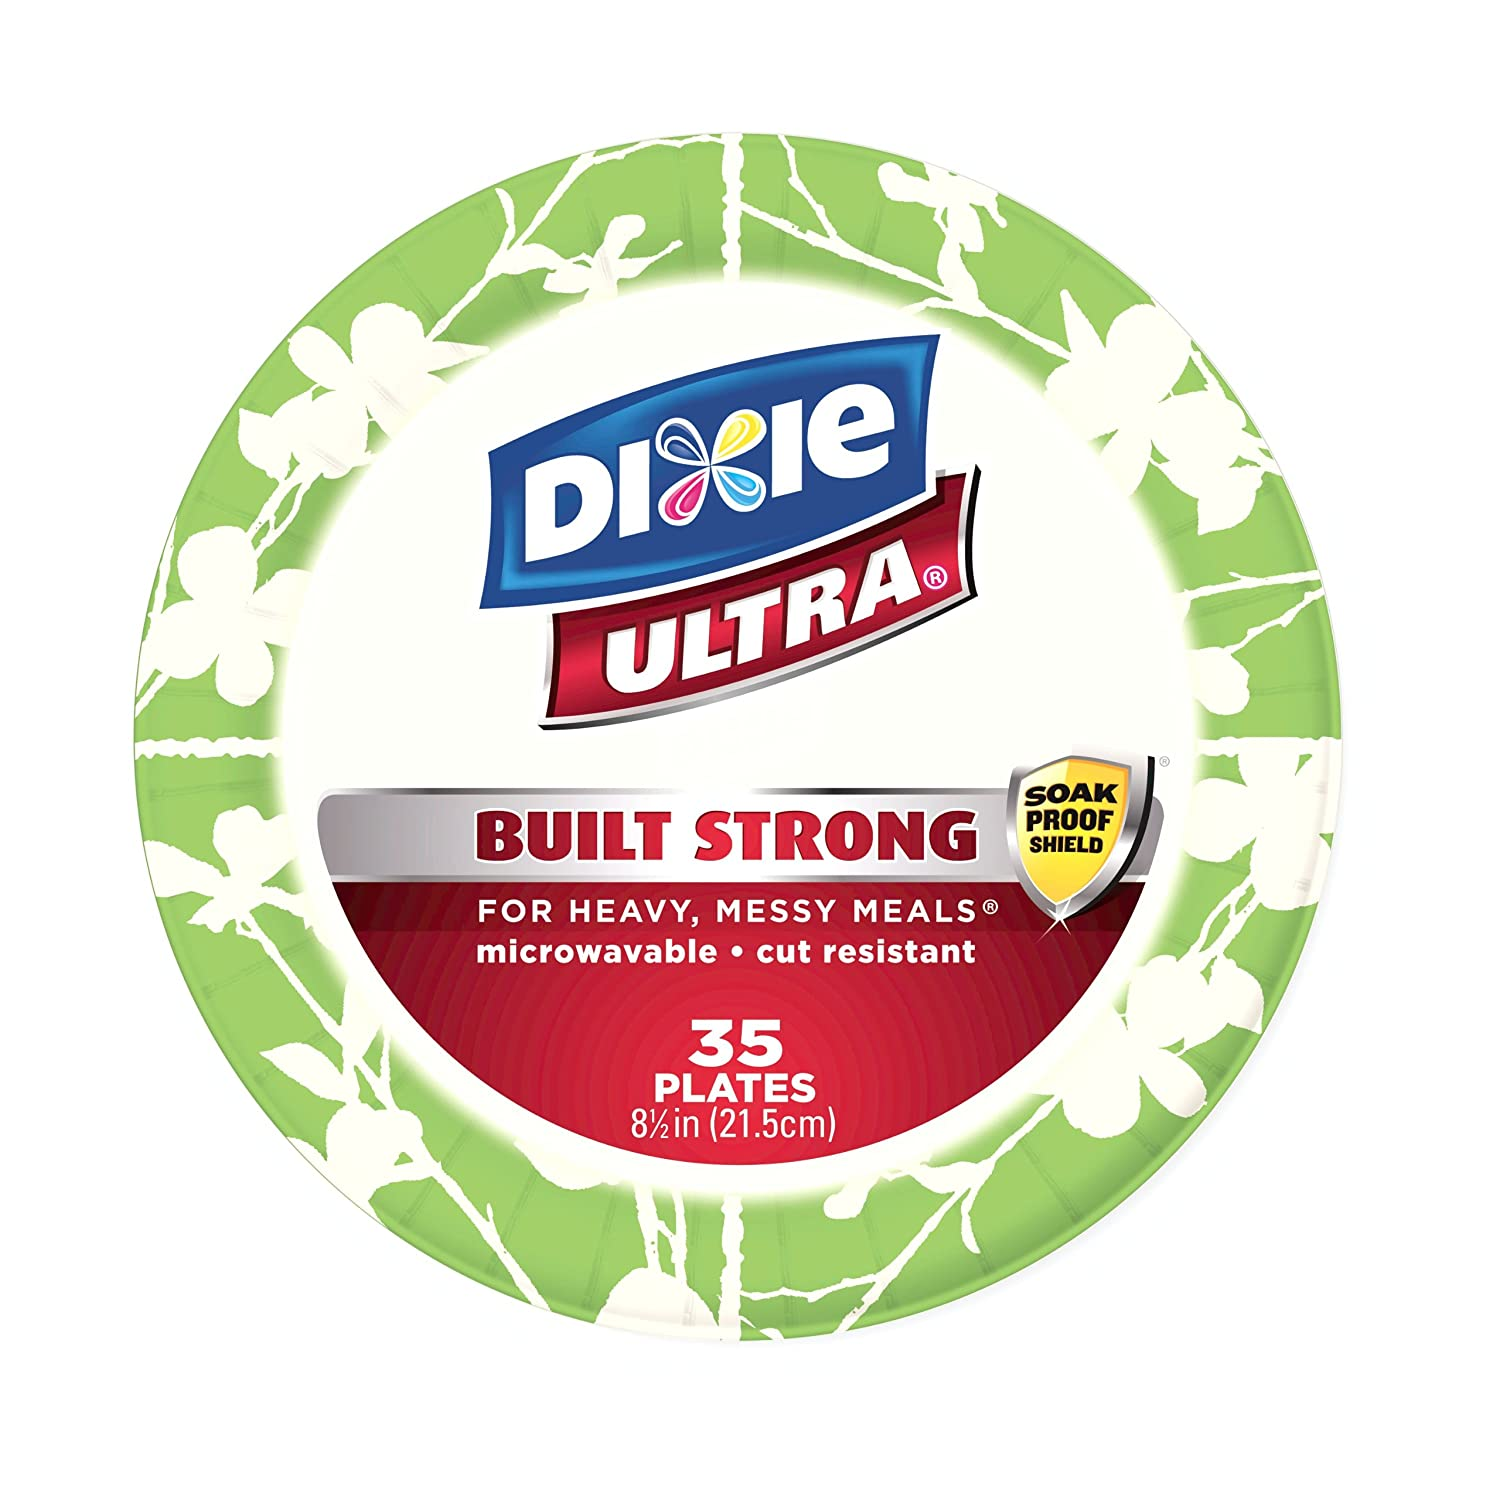 Amazon.com Dixie Ultra 8-1/2 Inches Plate 35-Count (Pack of 3) Health \u0026 Personal Care  sc 1 st  Amazon.com & Amazon.com: Dixie Ultra 8-1/2 Inches Plate 35-Count (Pack of 3 ...